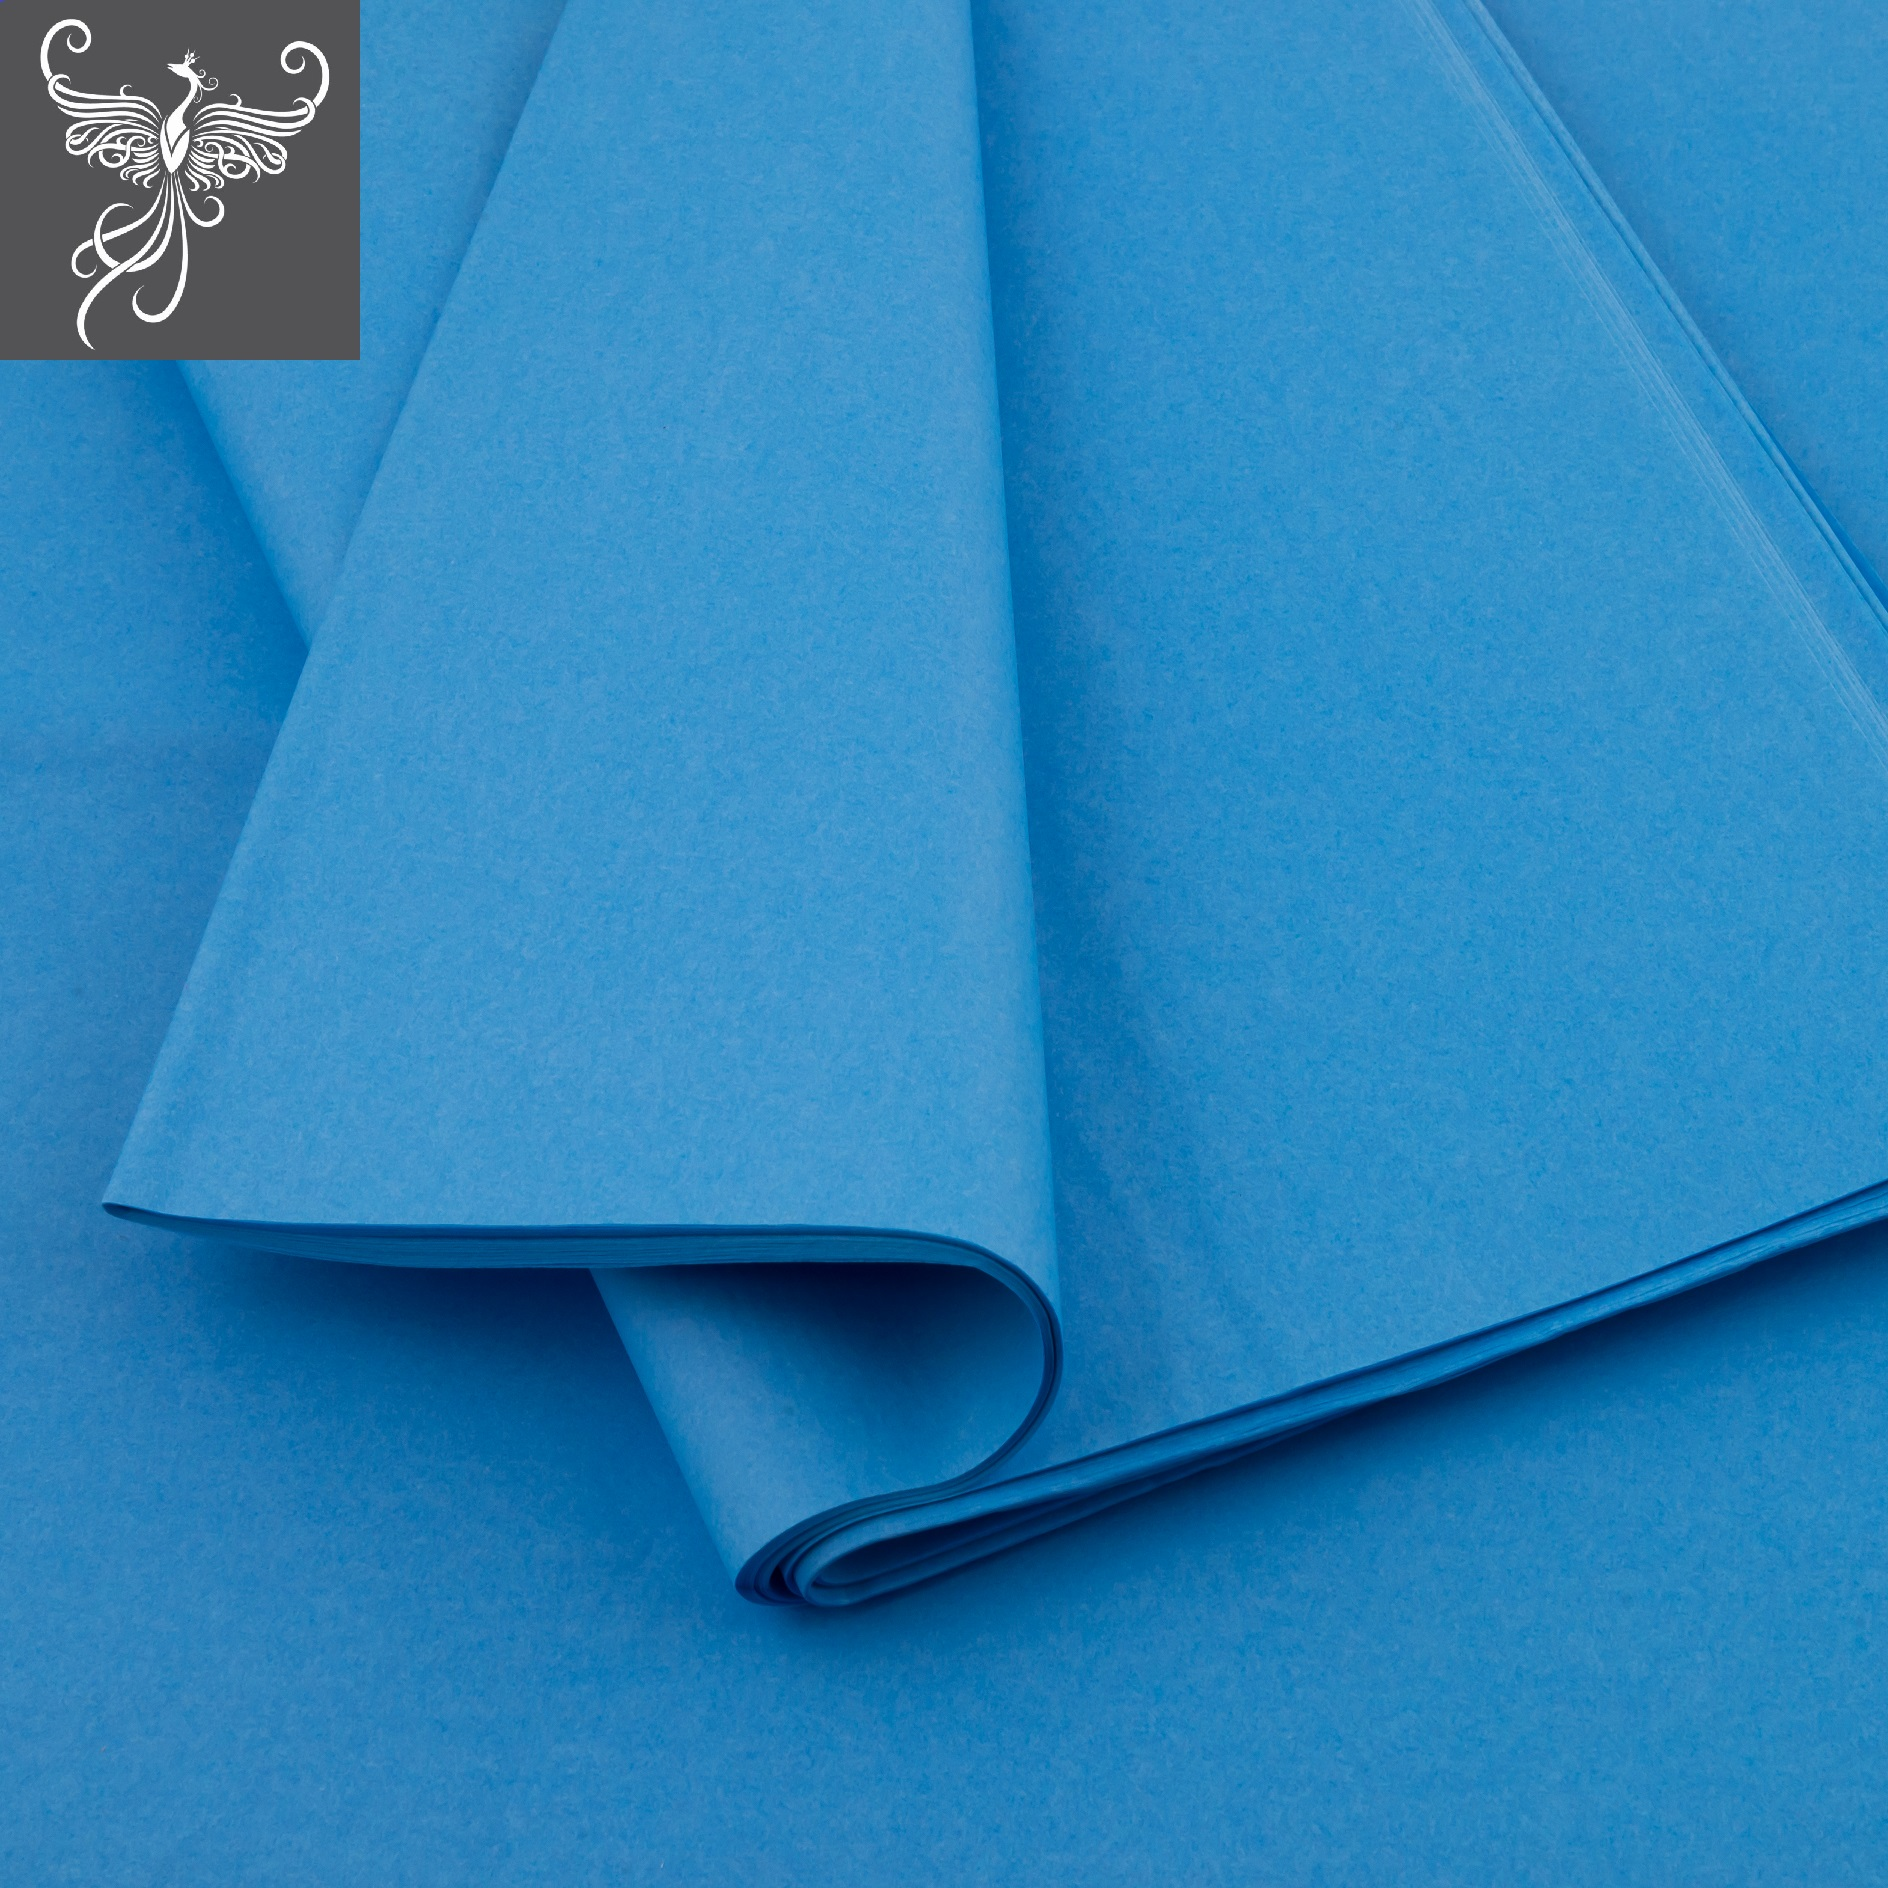 Plain tissue paper light blue